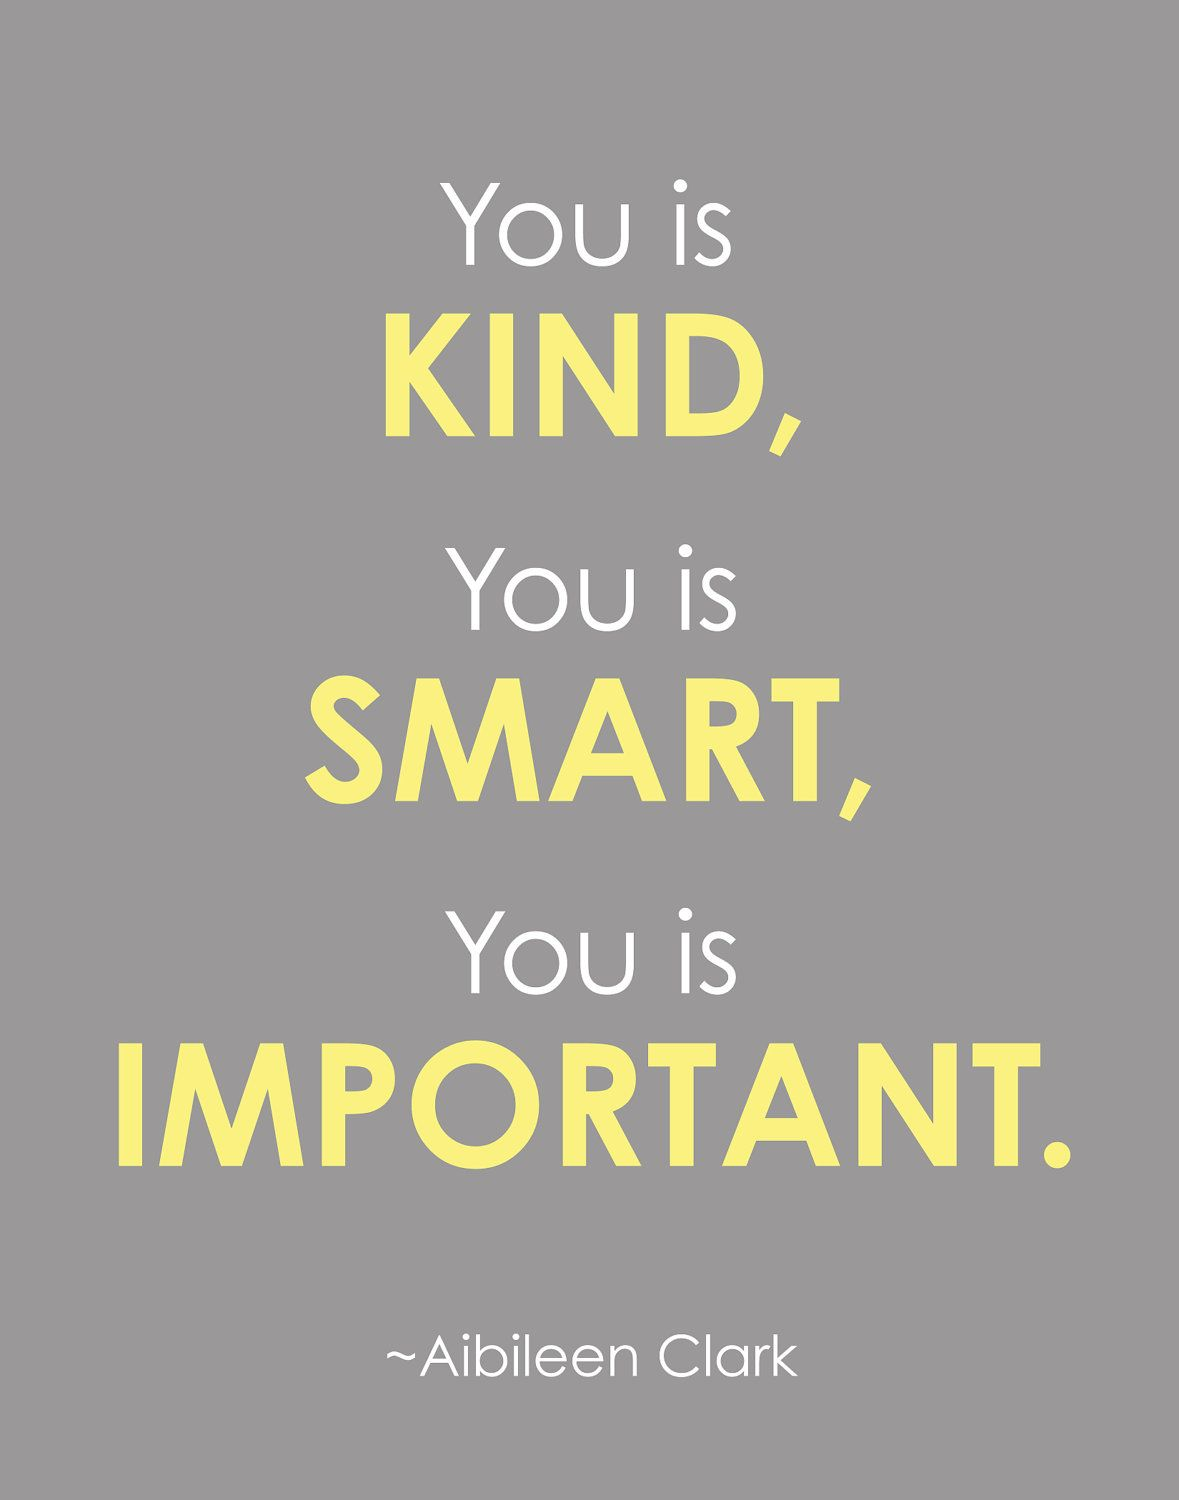 You Is Kind You Is Smart You Is Important Quote From The Book